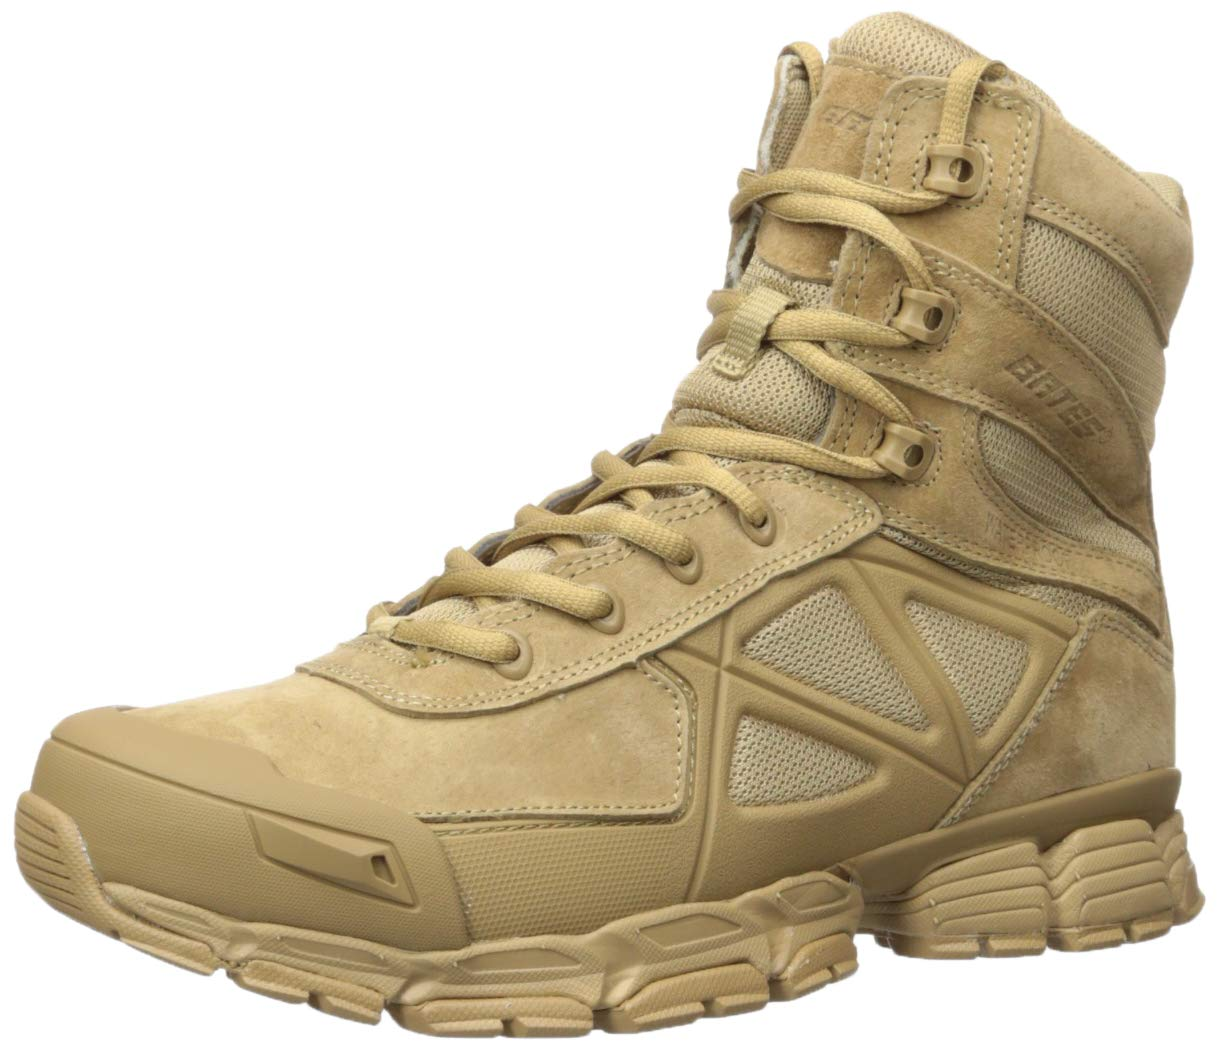 Bates Men's Velocitor Waterproof Fire and Safety Boot, Olive Mohave, 13 Extra Wide US